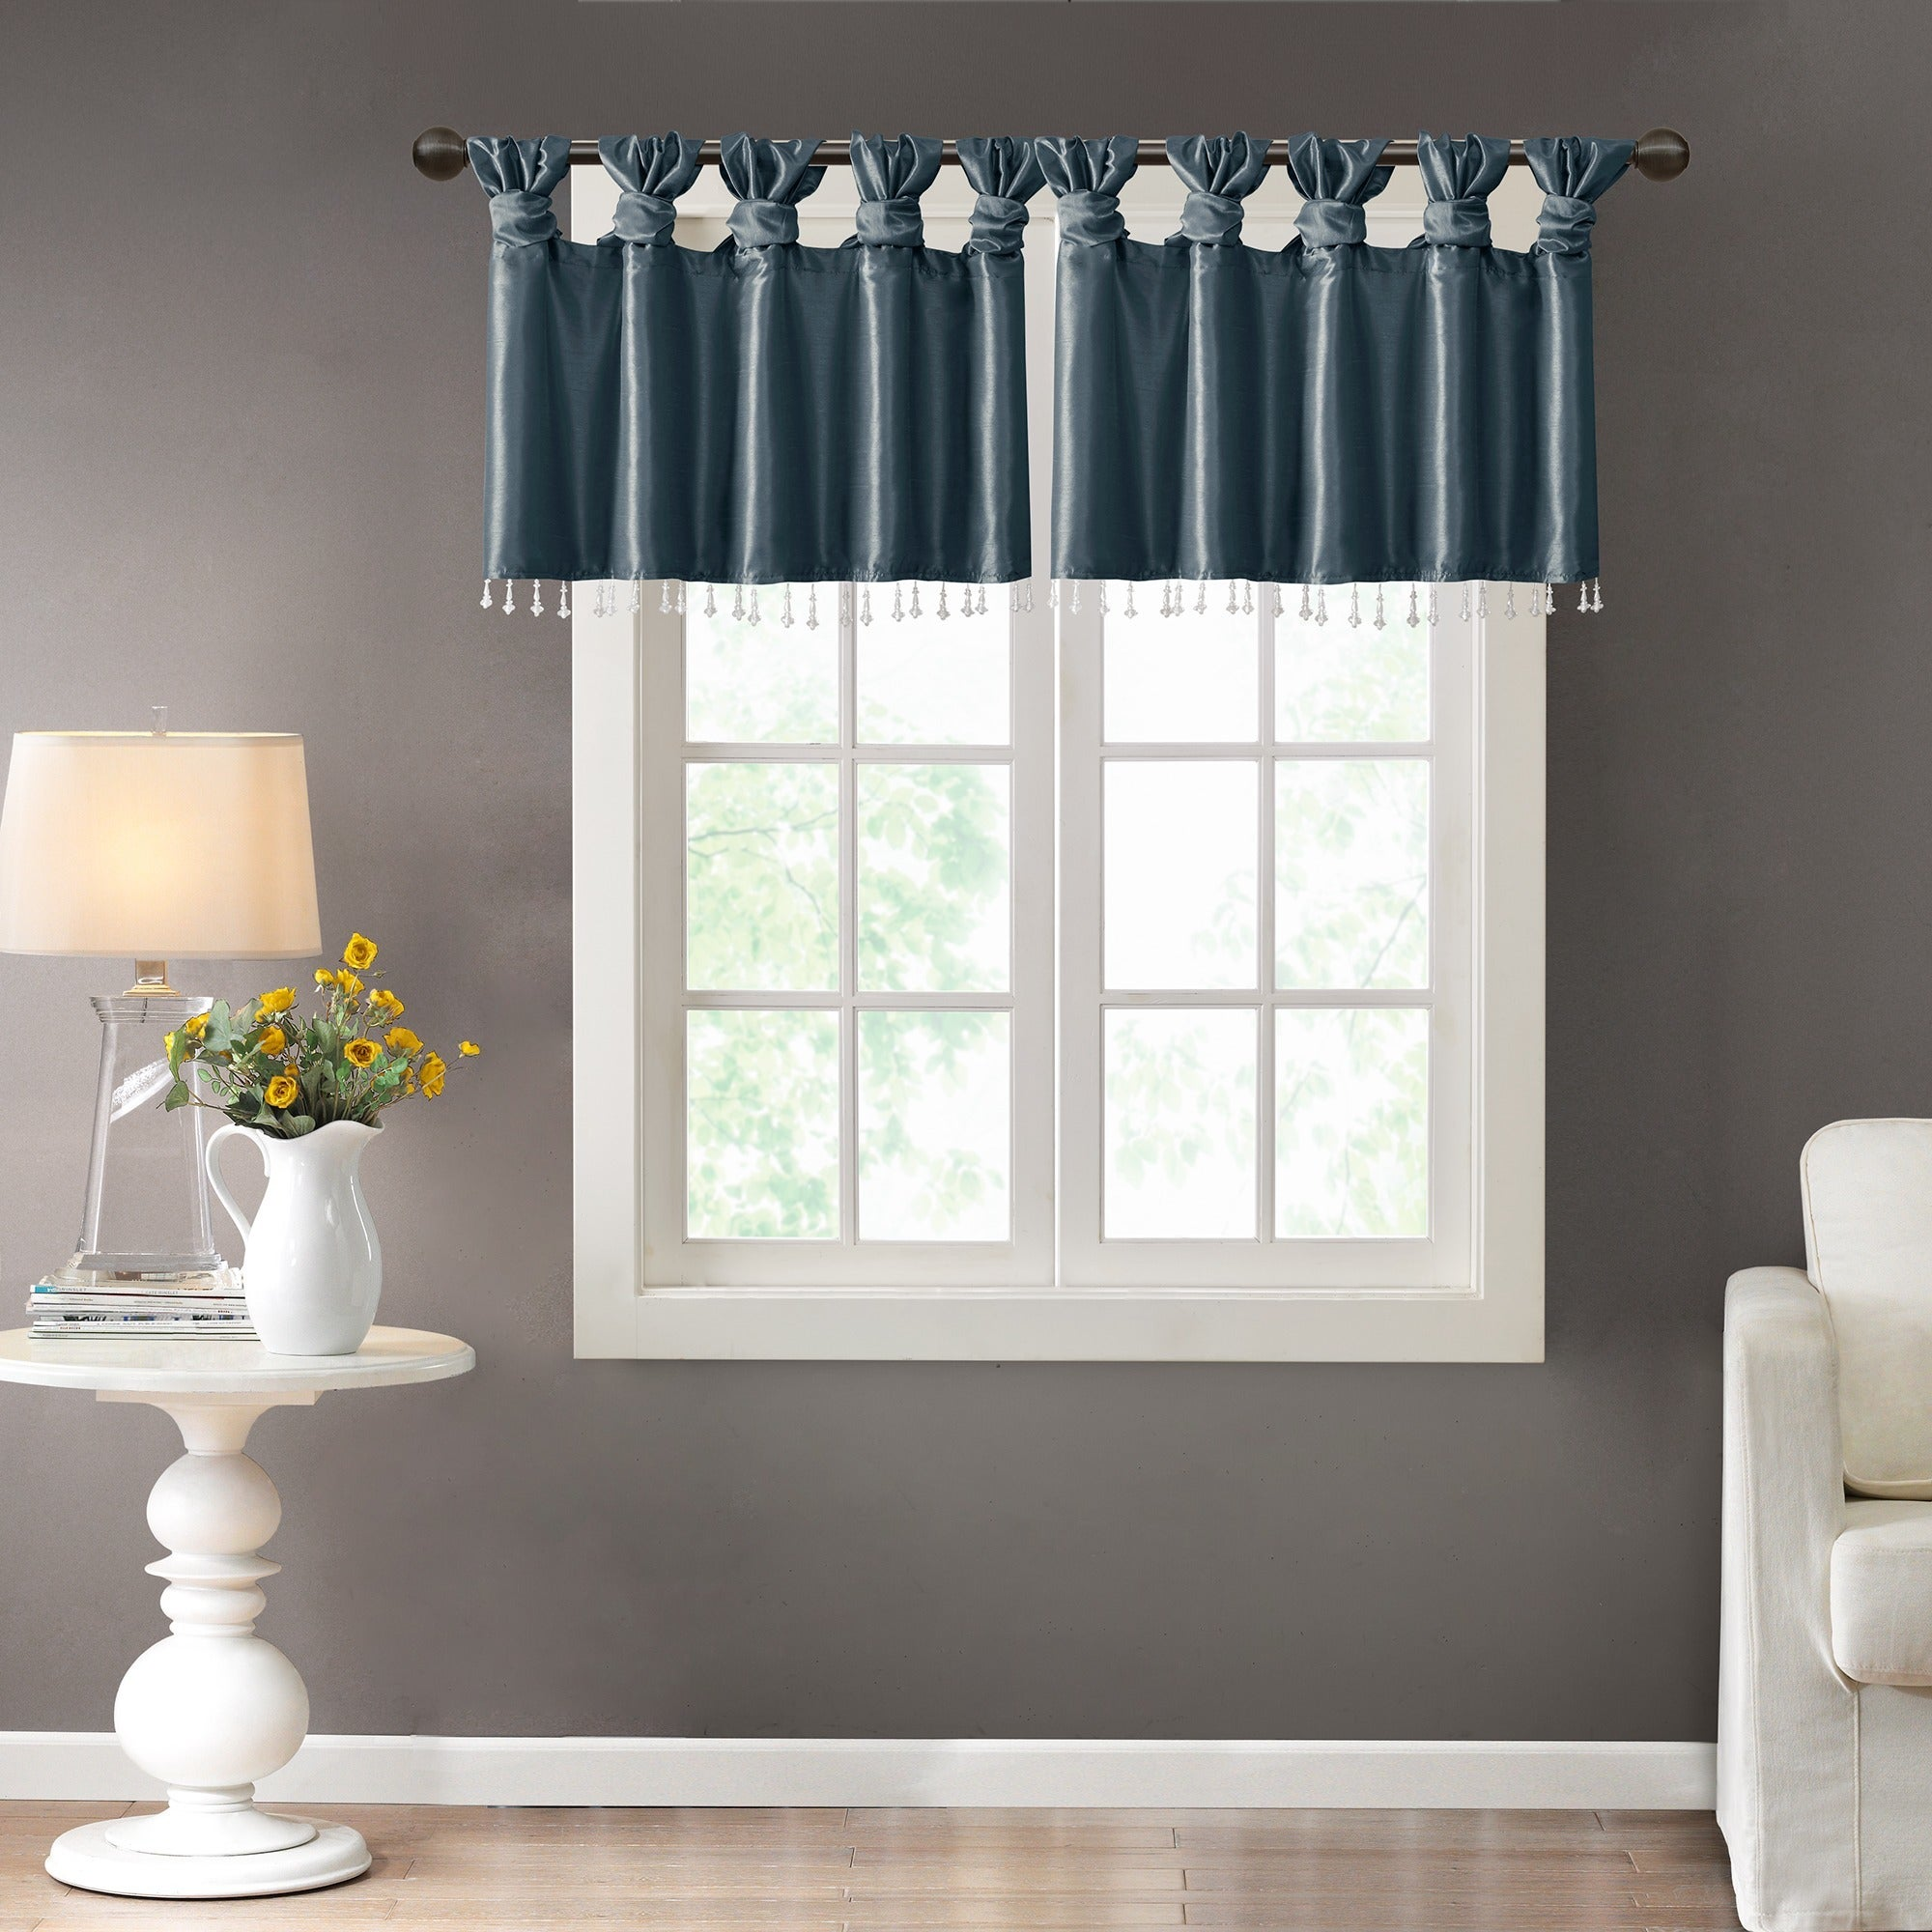 crazygoodbread com online blinds of motorized windows home magazine best with roman valance vinyl for shades valances paper kinds